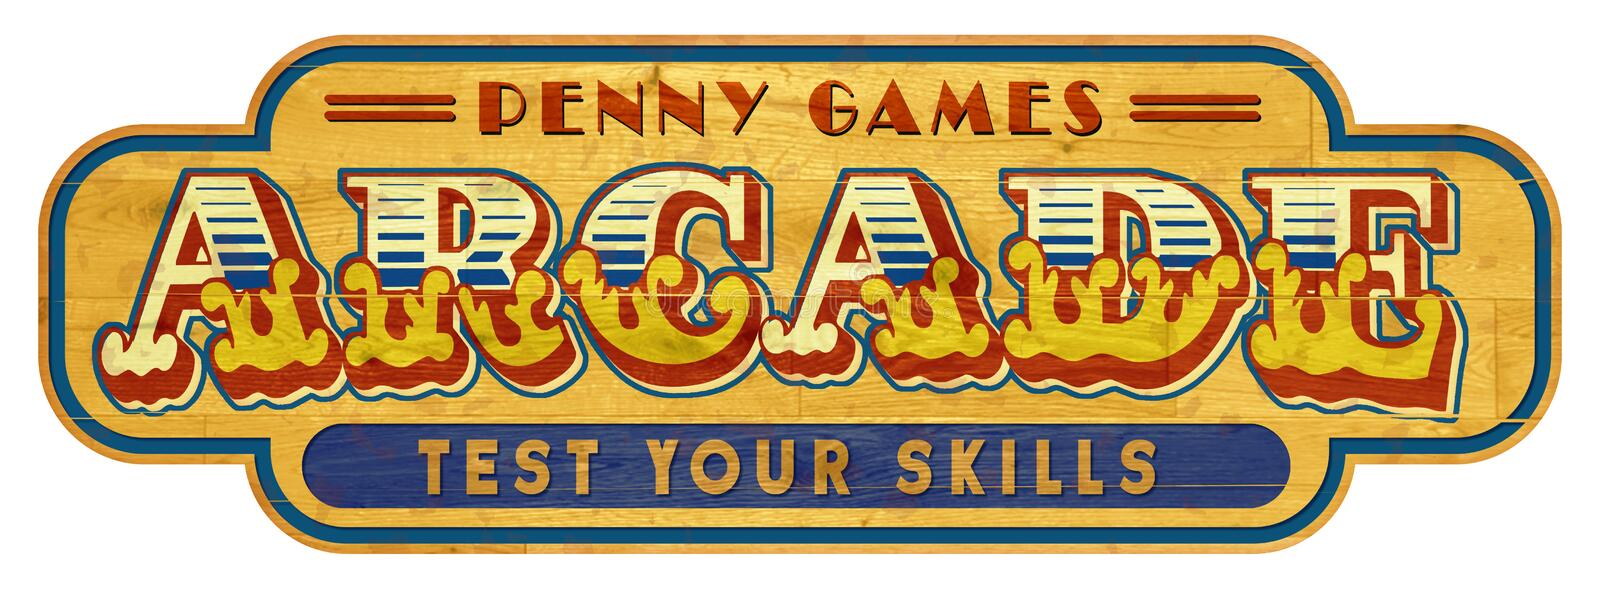 Arcade Sign Wood Vintage royalty free stock images